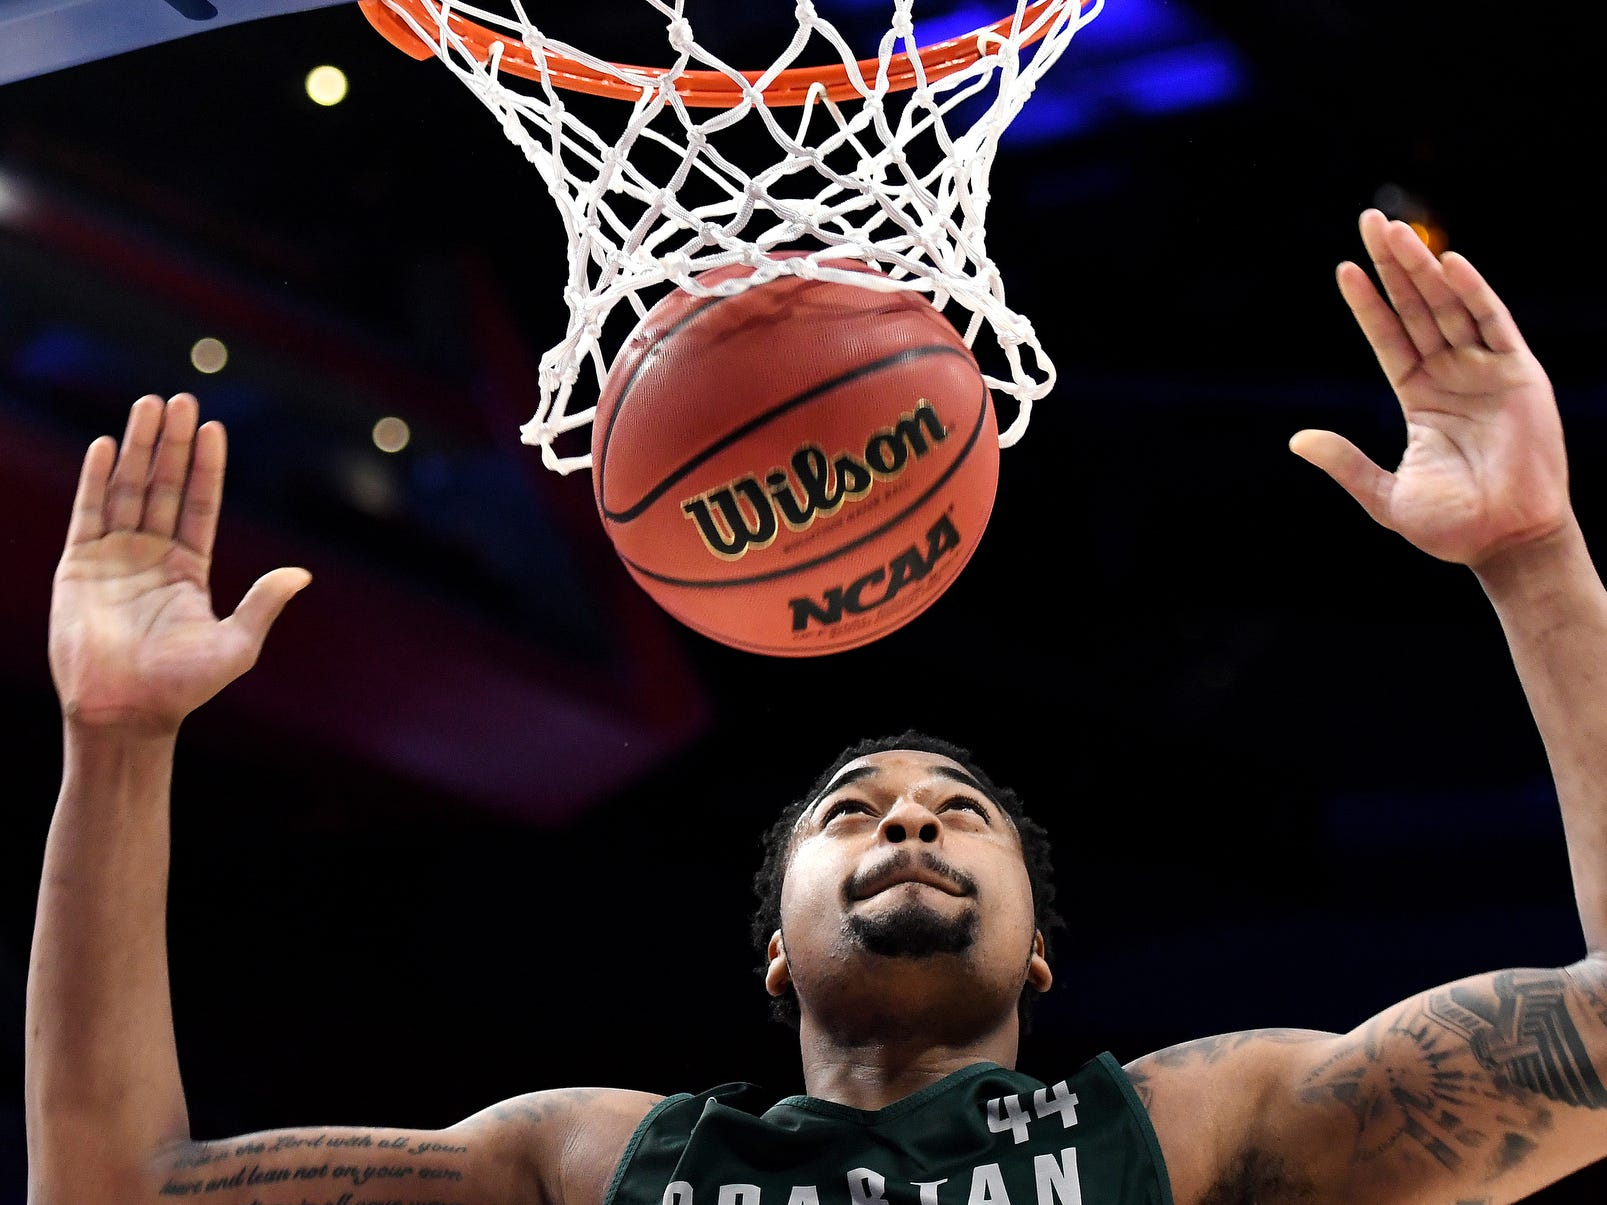 Michigan State's Nick Ward dunks during an open practice on Thursday, March 15, 2018, at the Little Caesars Arena in Detroit.